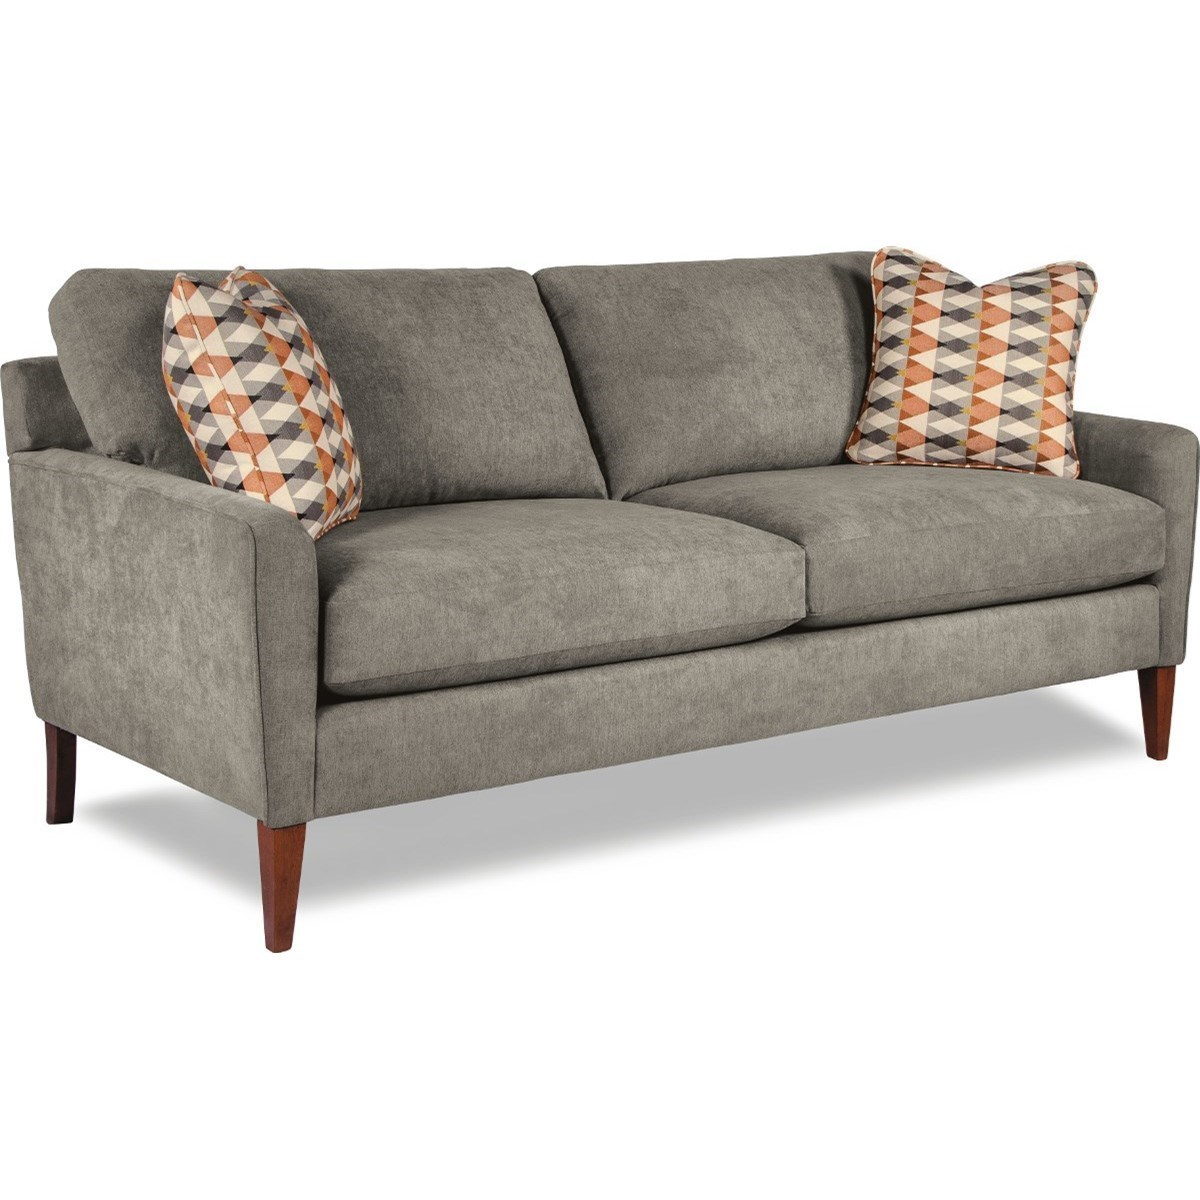 Modern Couch Mckinney Mid Century Modern Sofa By La Z Boy At Coconis Furniture Mattress 1st